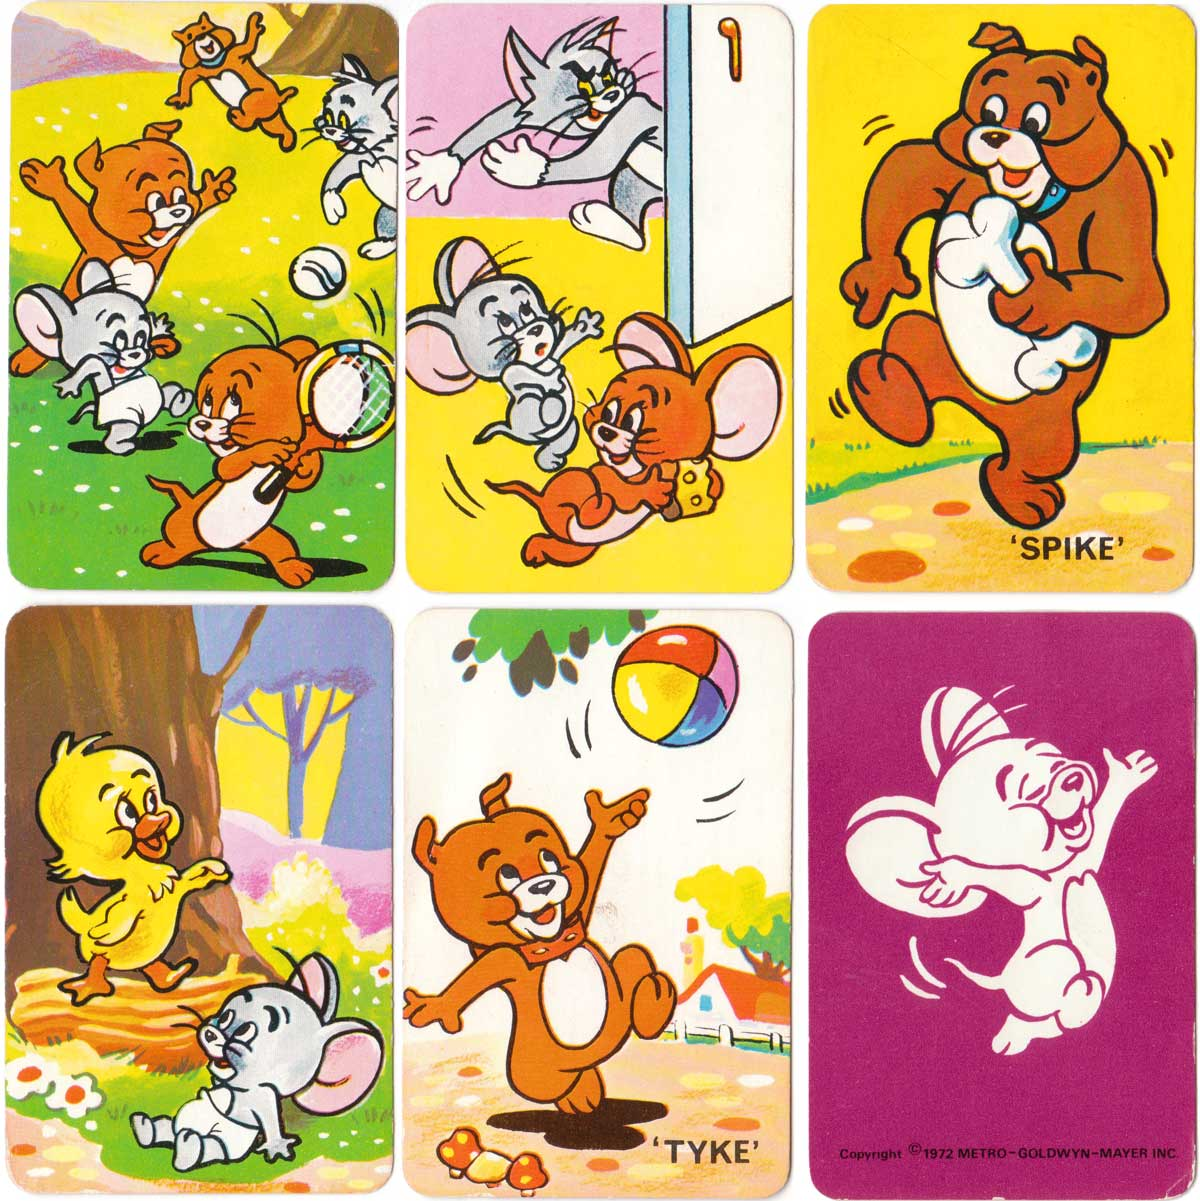 Tom and Jerry Snap published by Pepys Games, 1972